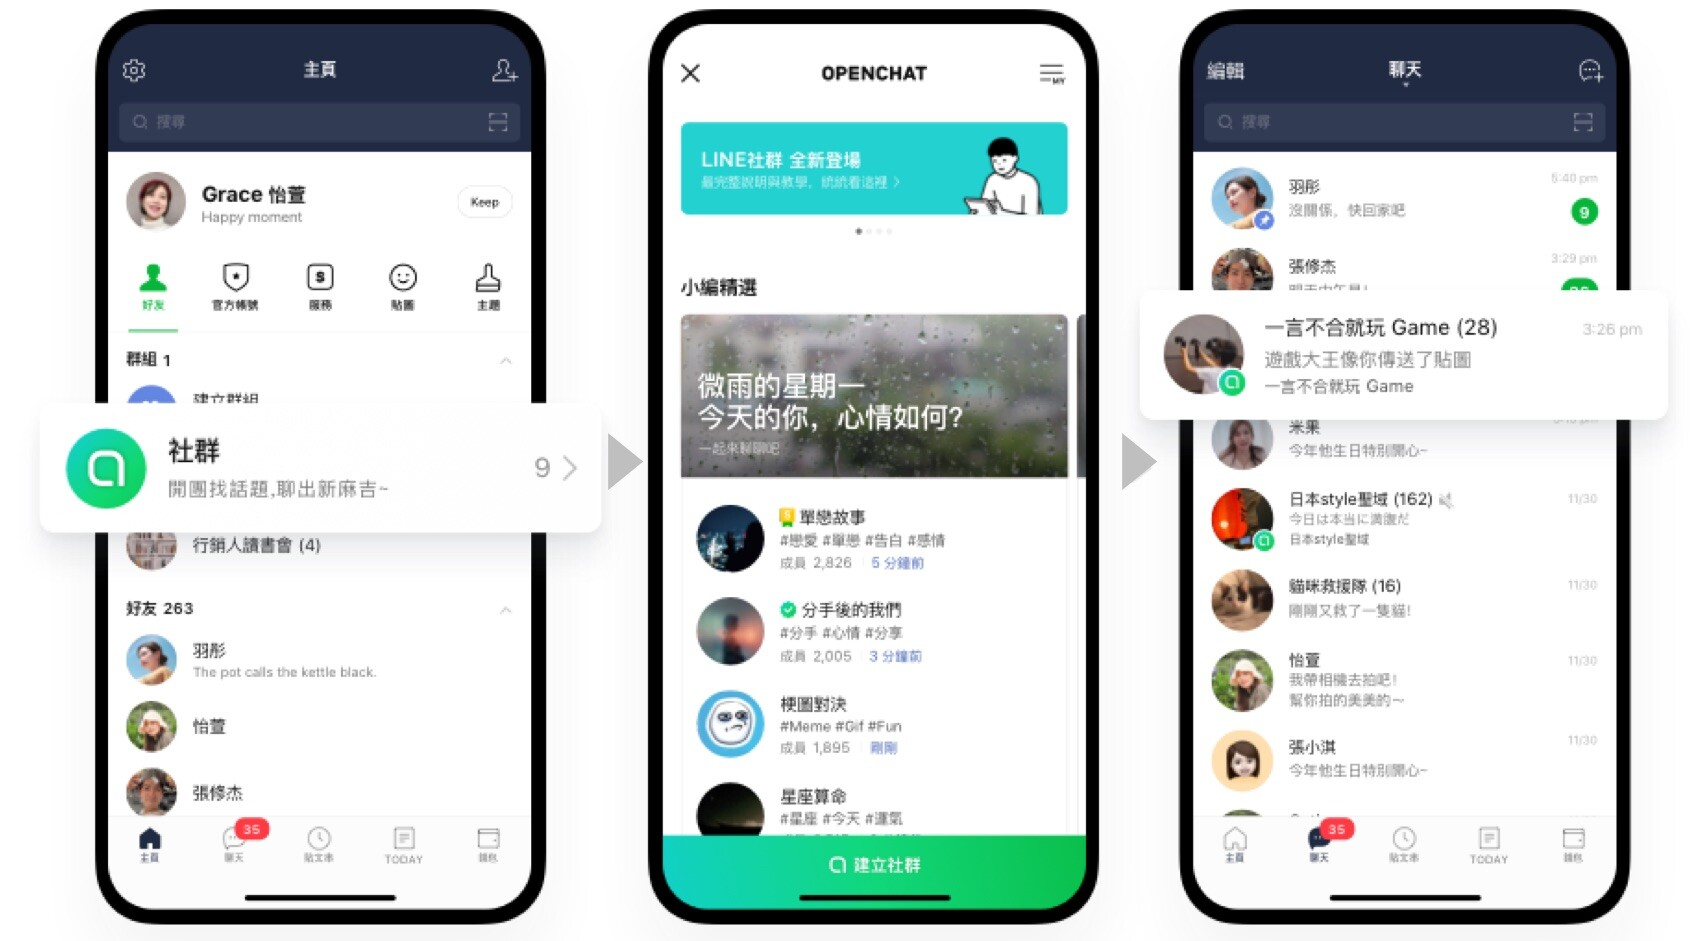 openchat_001